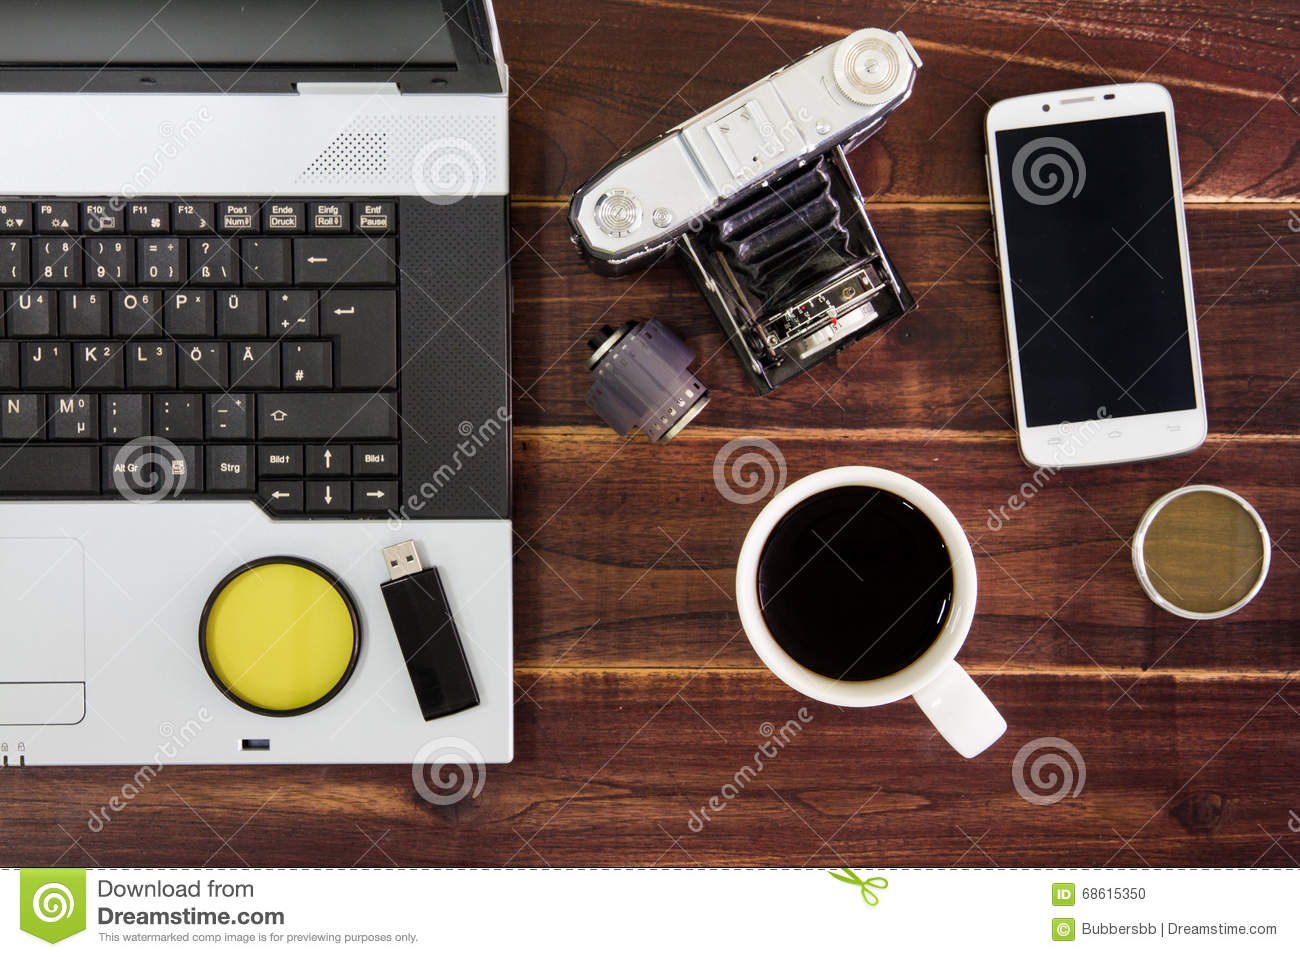 Notebook computer on the desk.USB flash drive stick,coffee cup,camera,smartphone